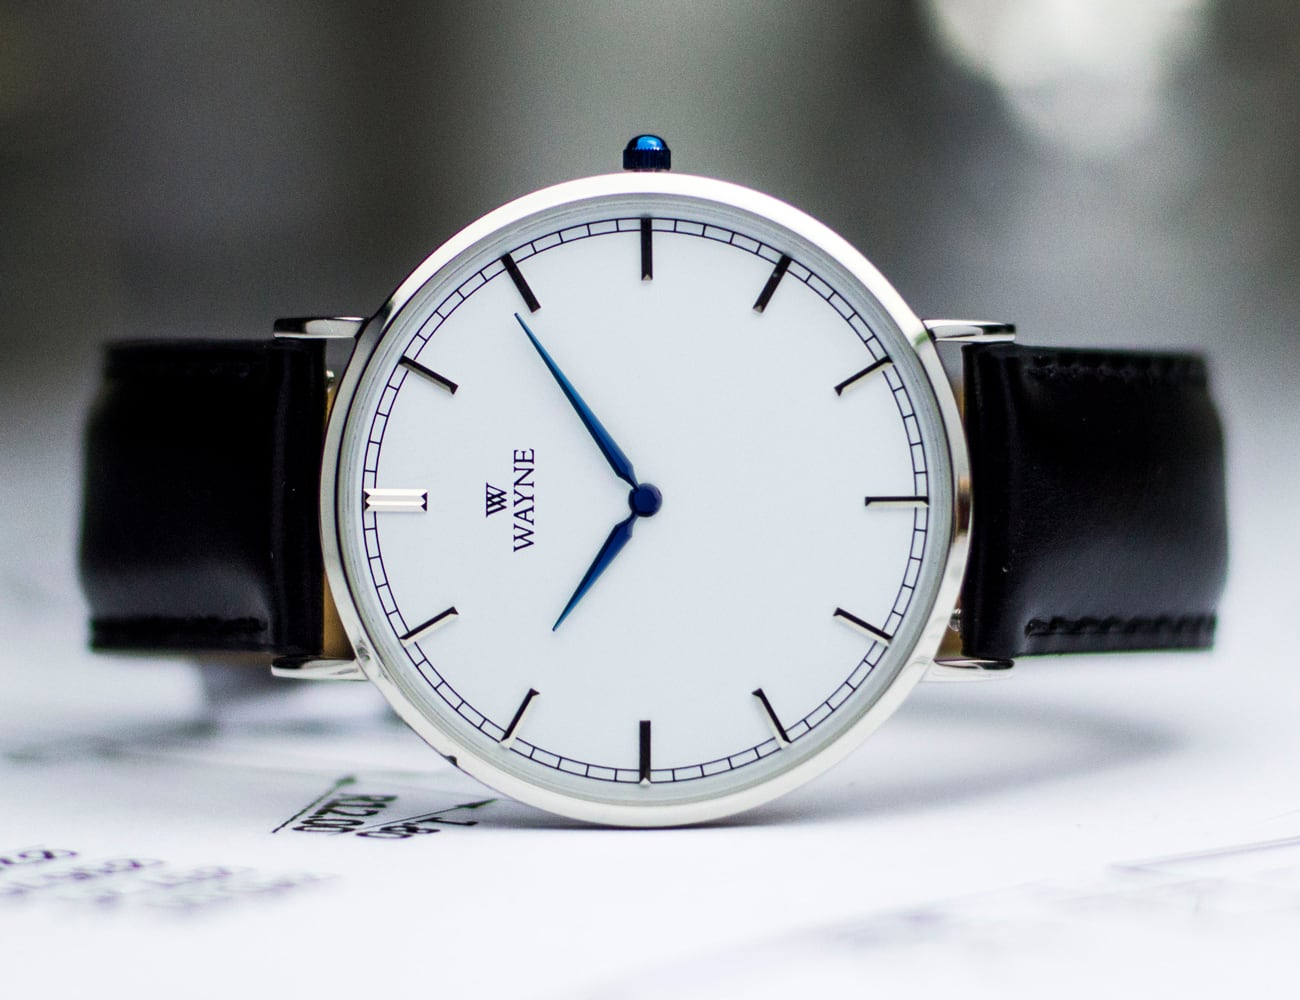 Wayne Socially Responsible Affordable Watches